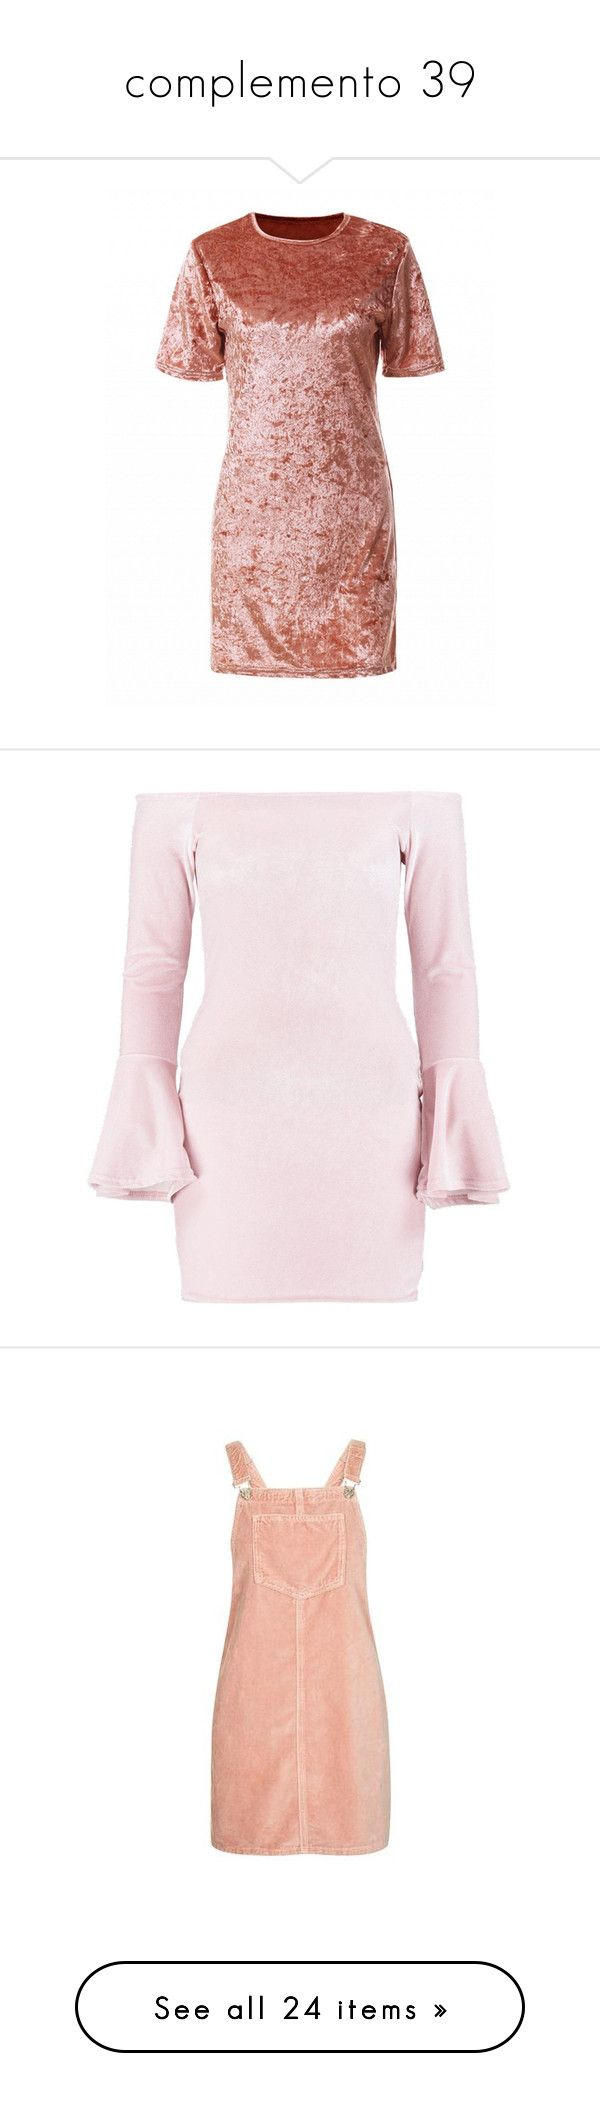 """""""complemento 39"""" by jasmimestefany ❤ liked on Polyvore featuring dresses, pink, short-sleeve dresses, metallic shift dress, short sleeve dress, velvet shift dress, pink short sleeve dress, petite cocktail dress, velvet dress and flutter sleeve dress"""